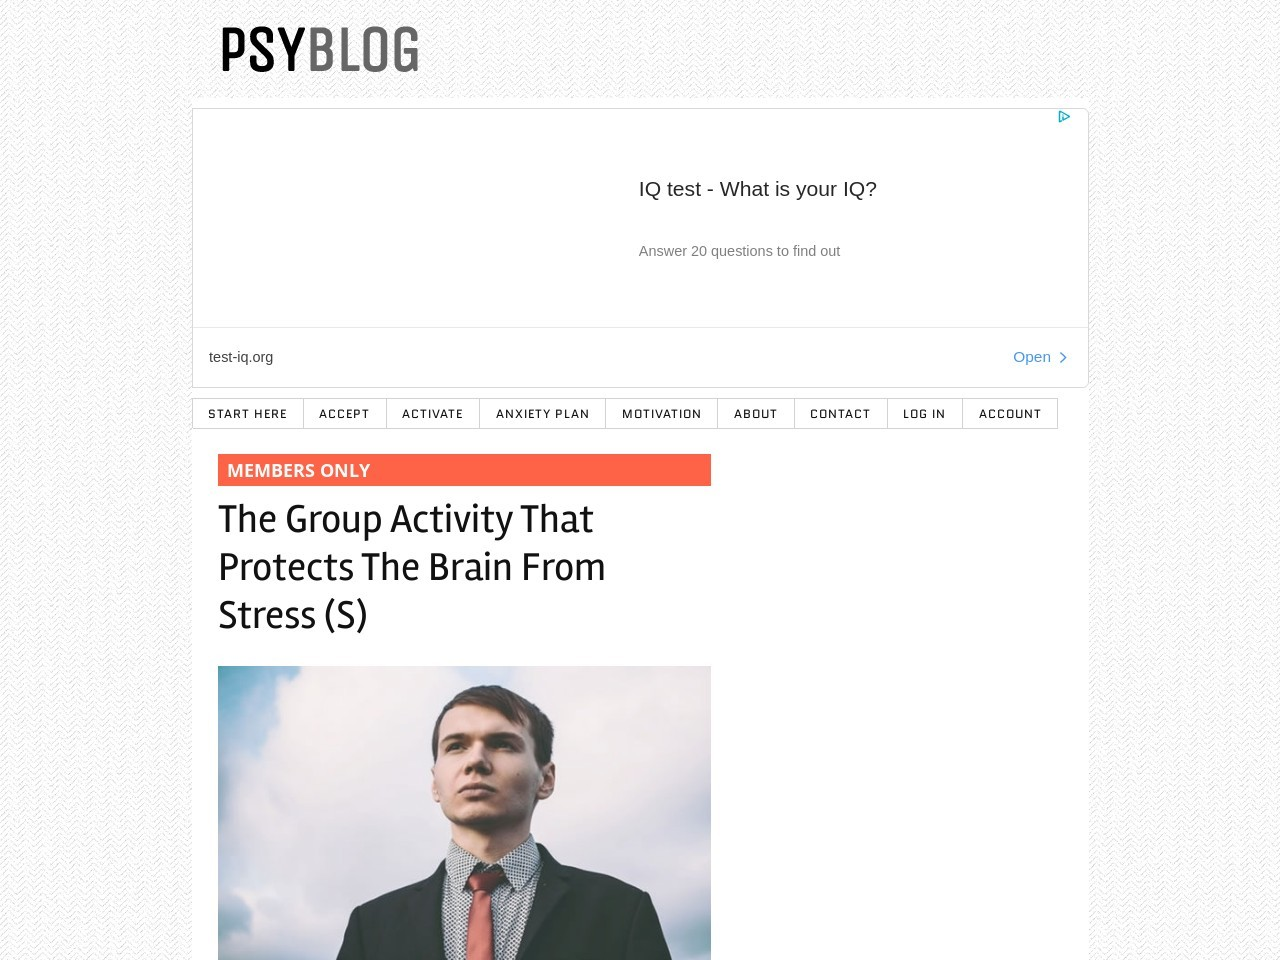 The Group Activity That Protects The Brain From Stress